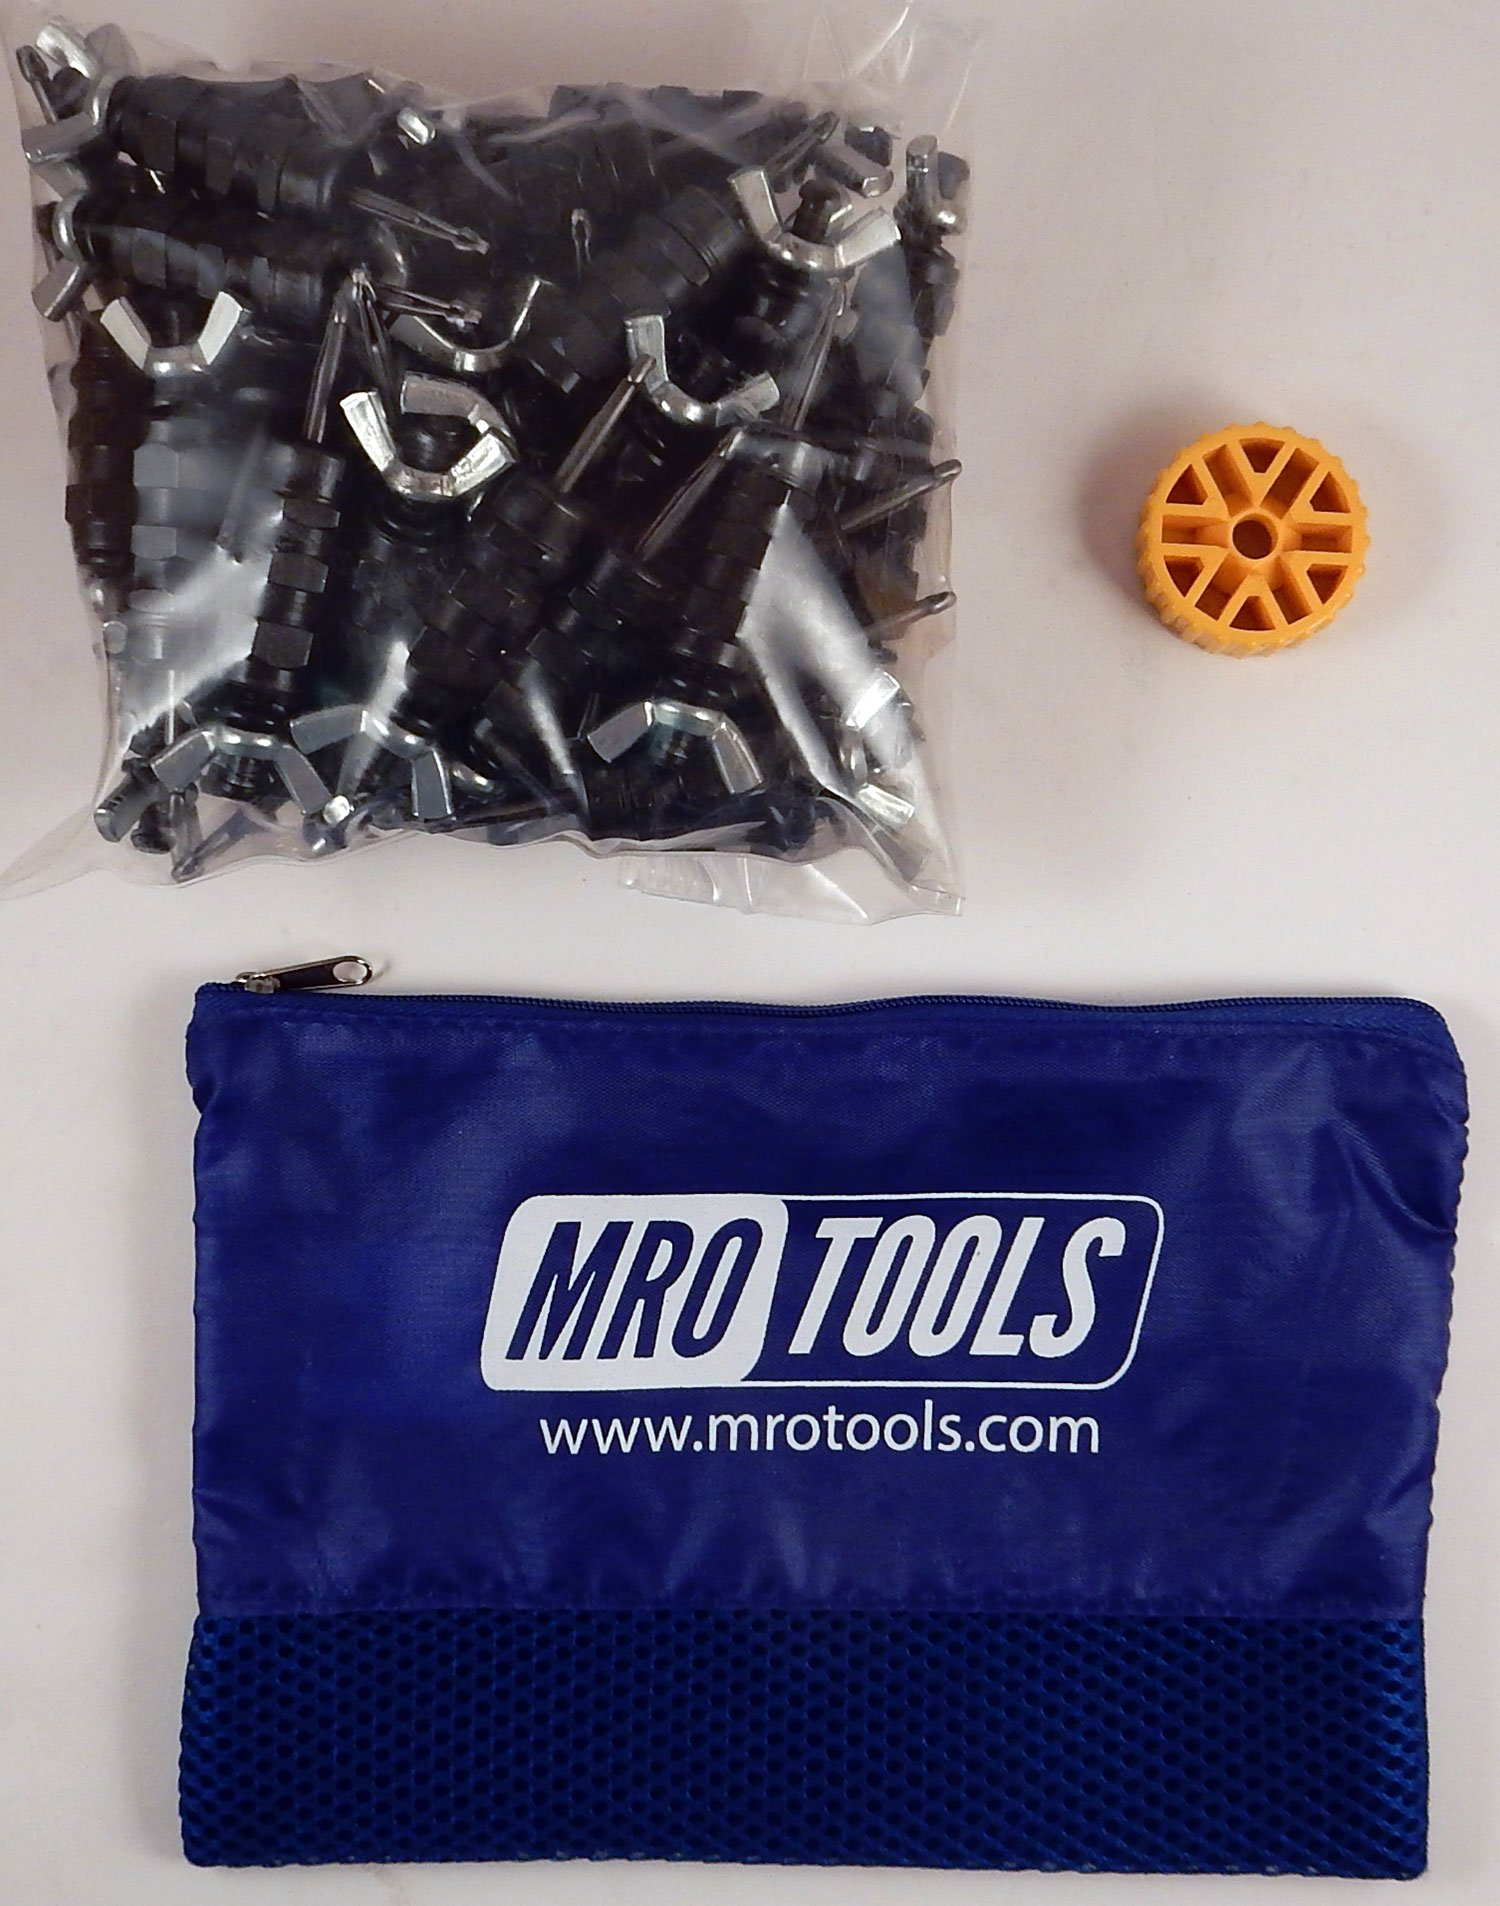 50 5/32 Standard Wing-Nut Cleco Fasteners w HBHT Tool & Carry Bag (KWN1S50-5/32)